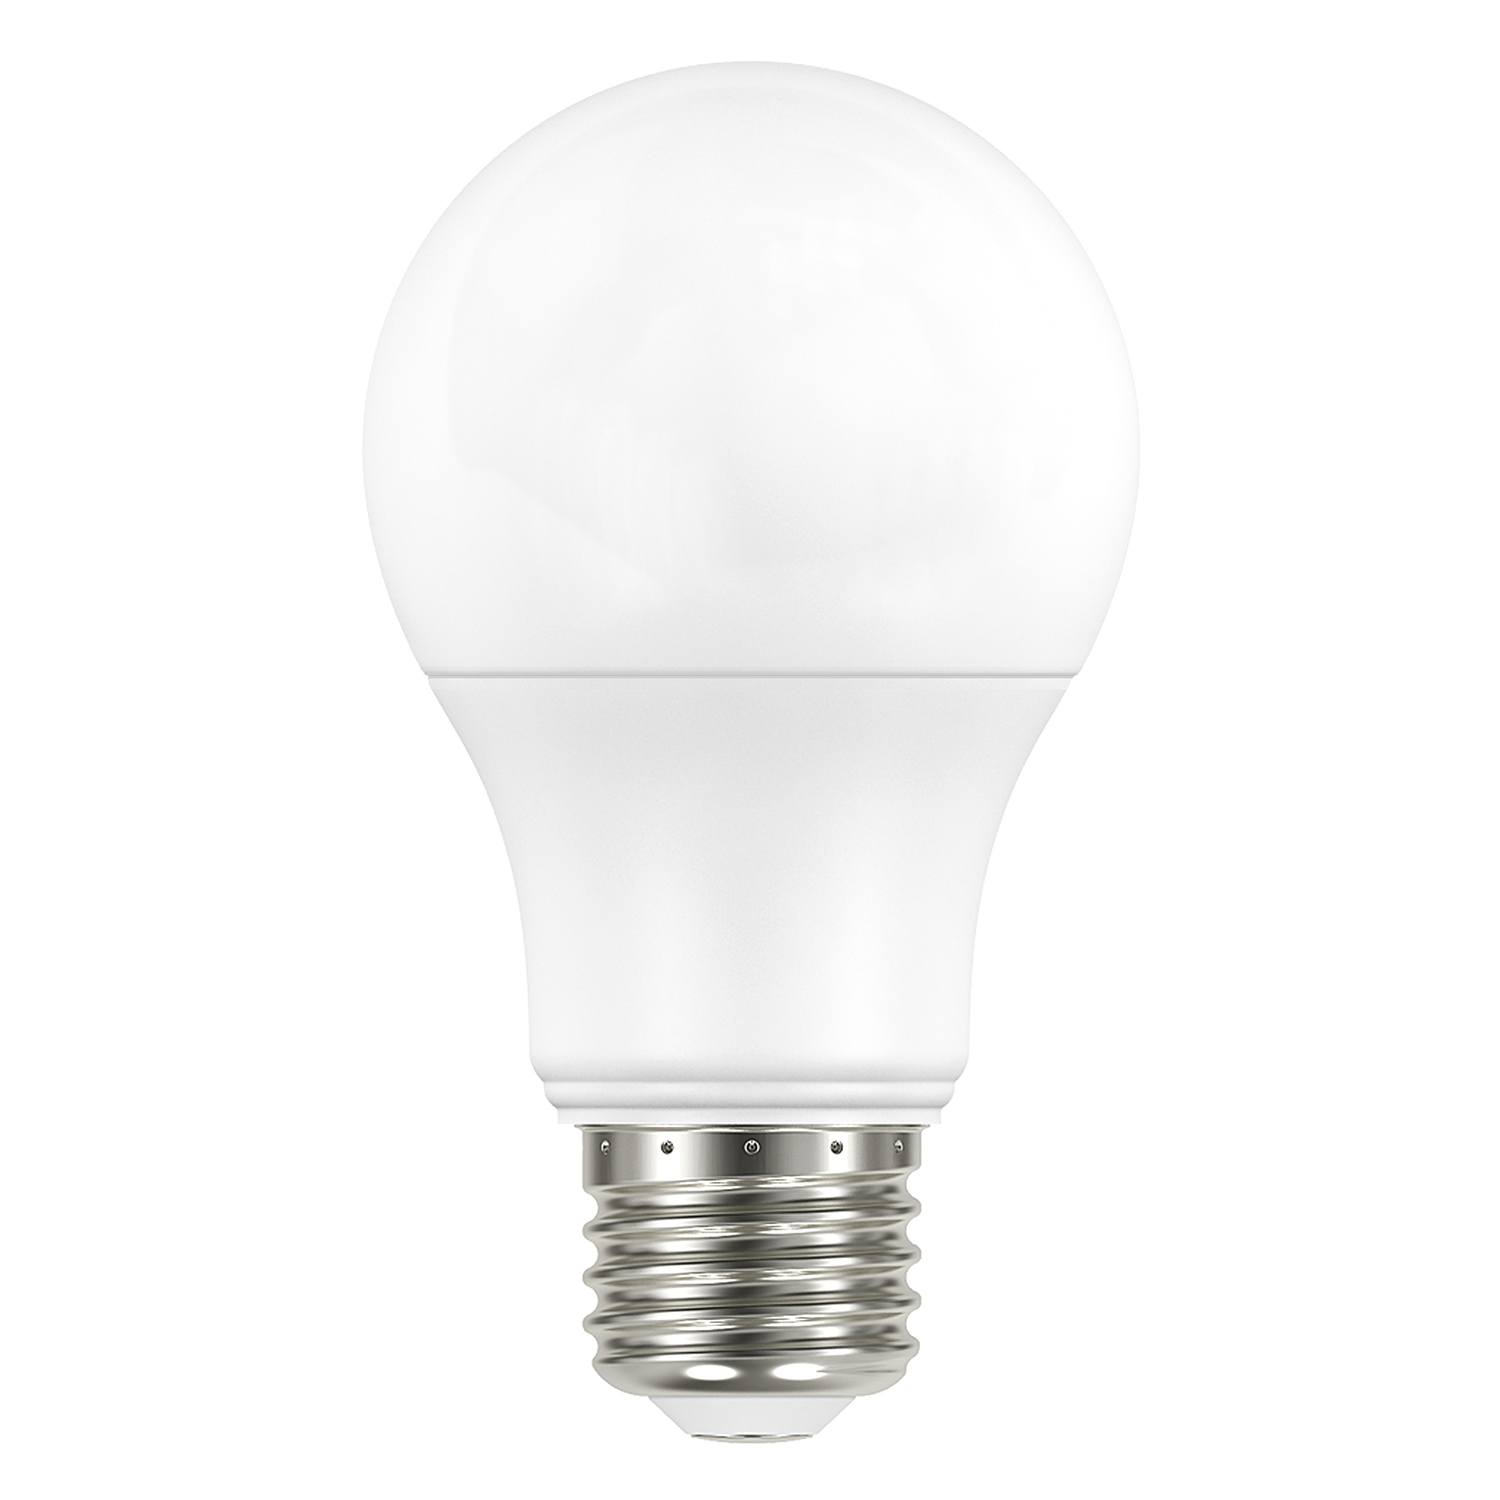 A19FR9/850/ND/LED 80886 LED A19 9.5W 5000K NON-DIMMABLE E26 ProLED